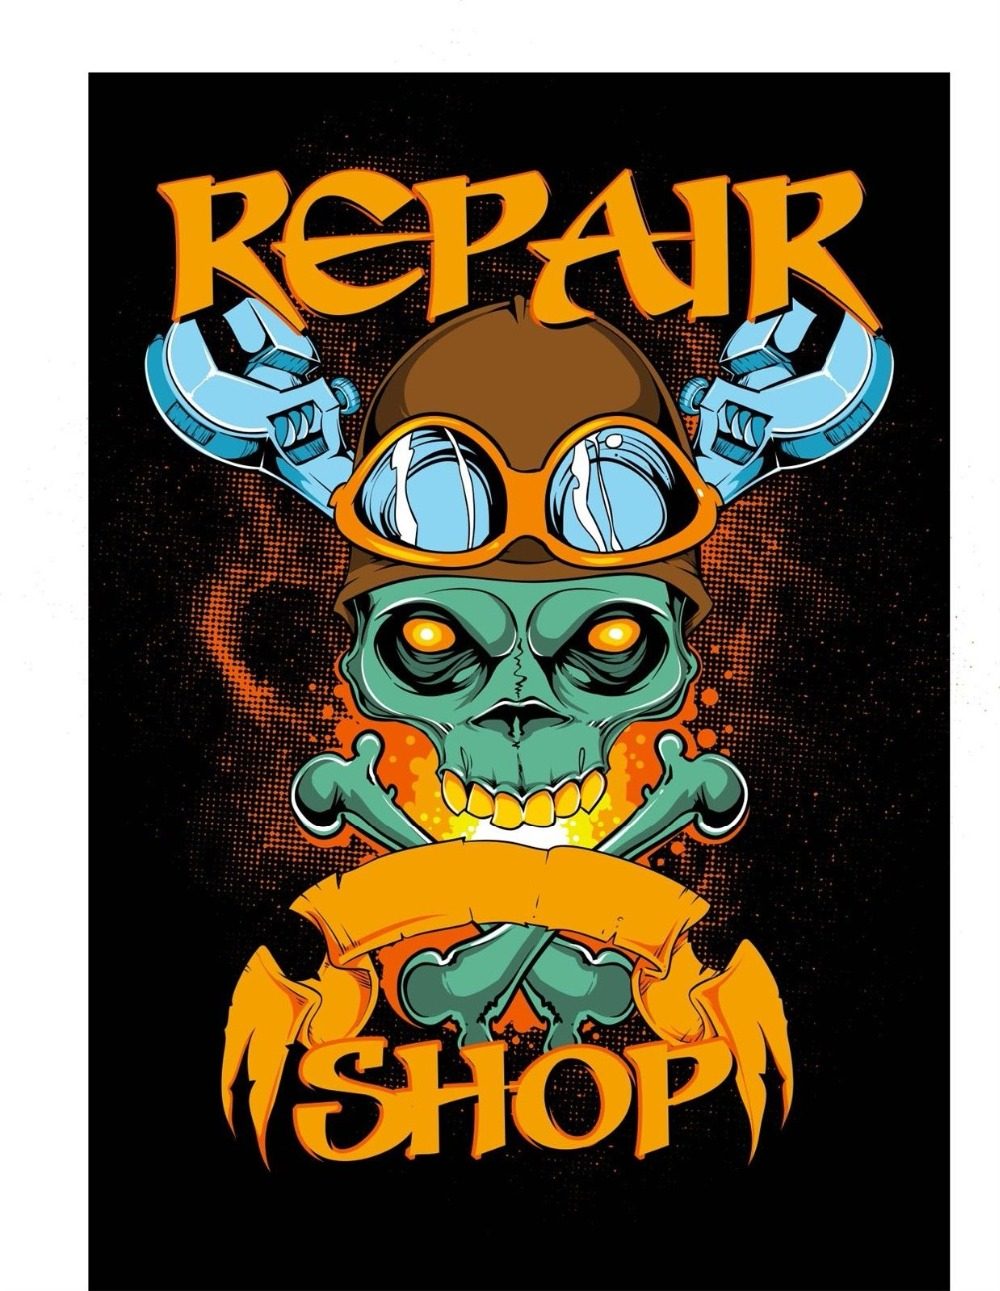 2018 Short Sleeve Cotton T Shirts Man Clothing Black Tee Shirt Repair Shop Skull And Wrenches 436T-Shirt Summer Style Funny